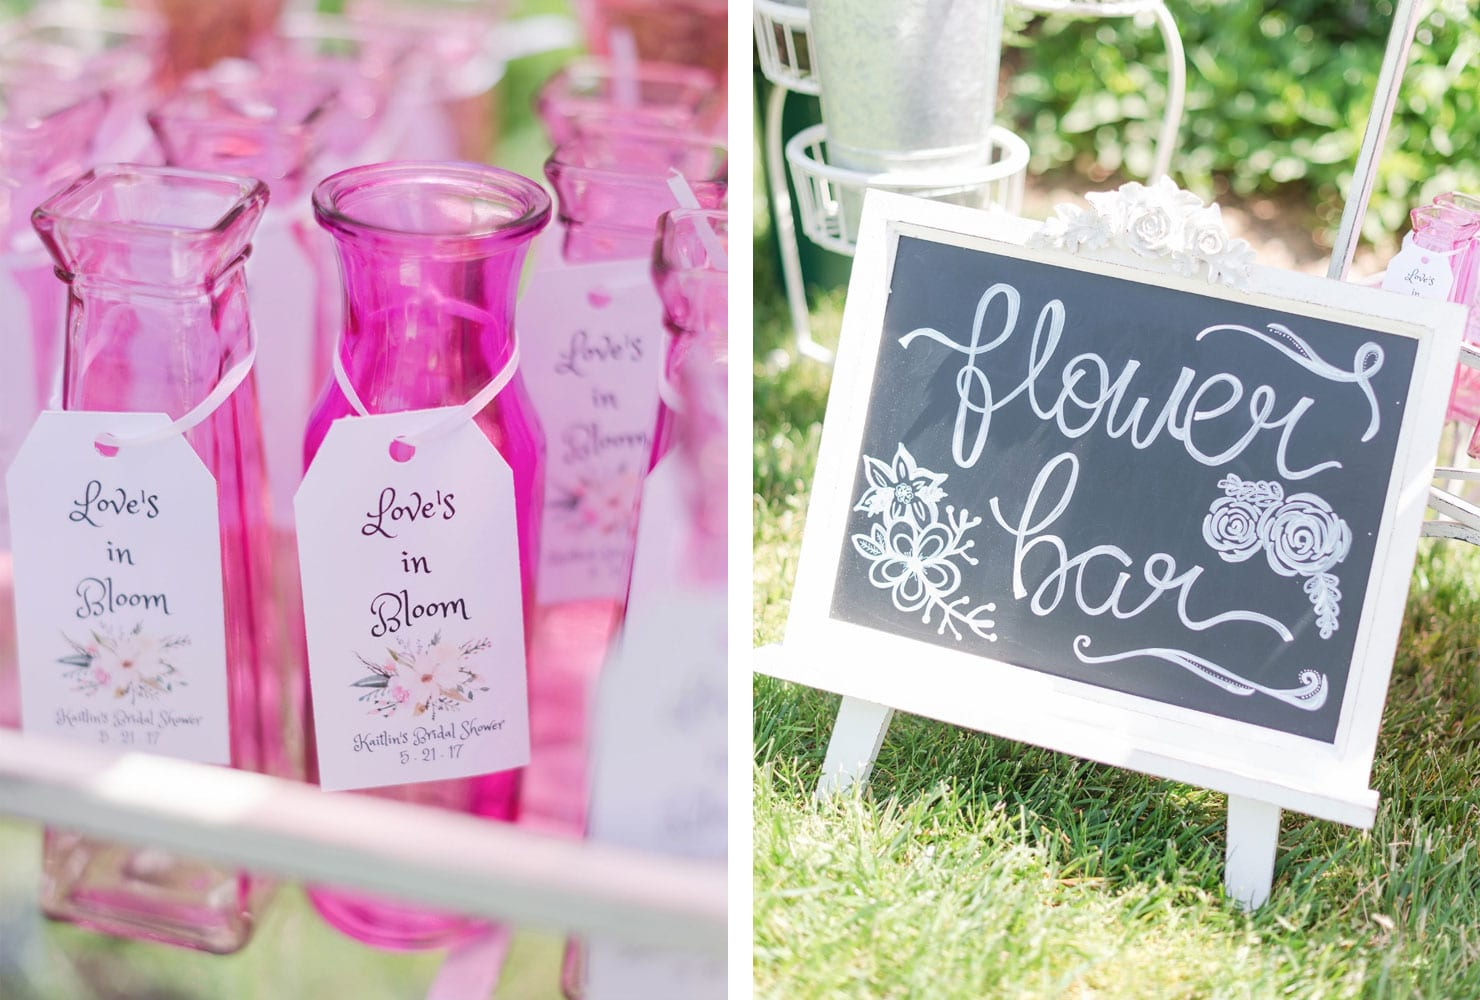 Pink vases with flower bar for party favors